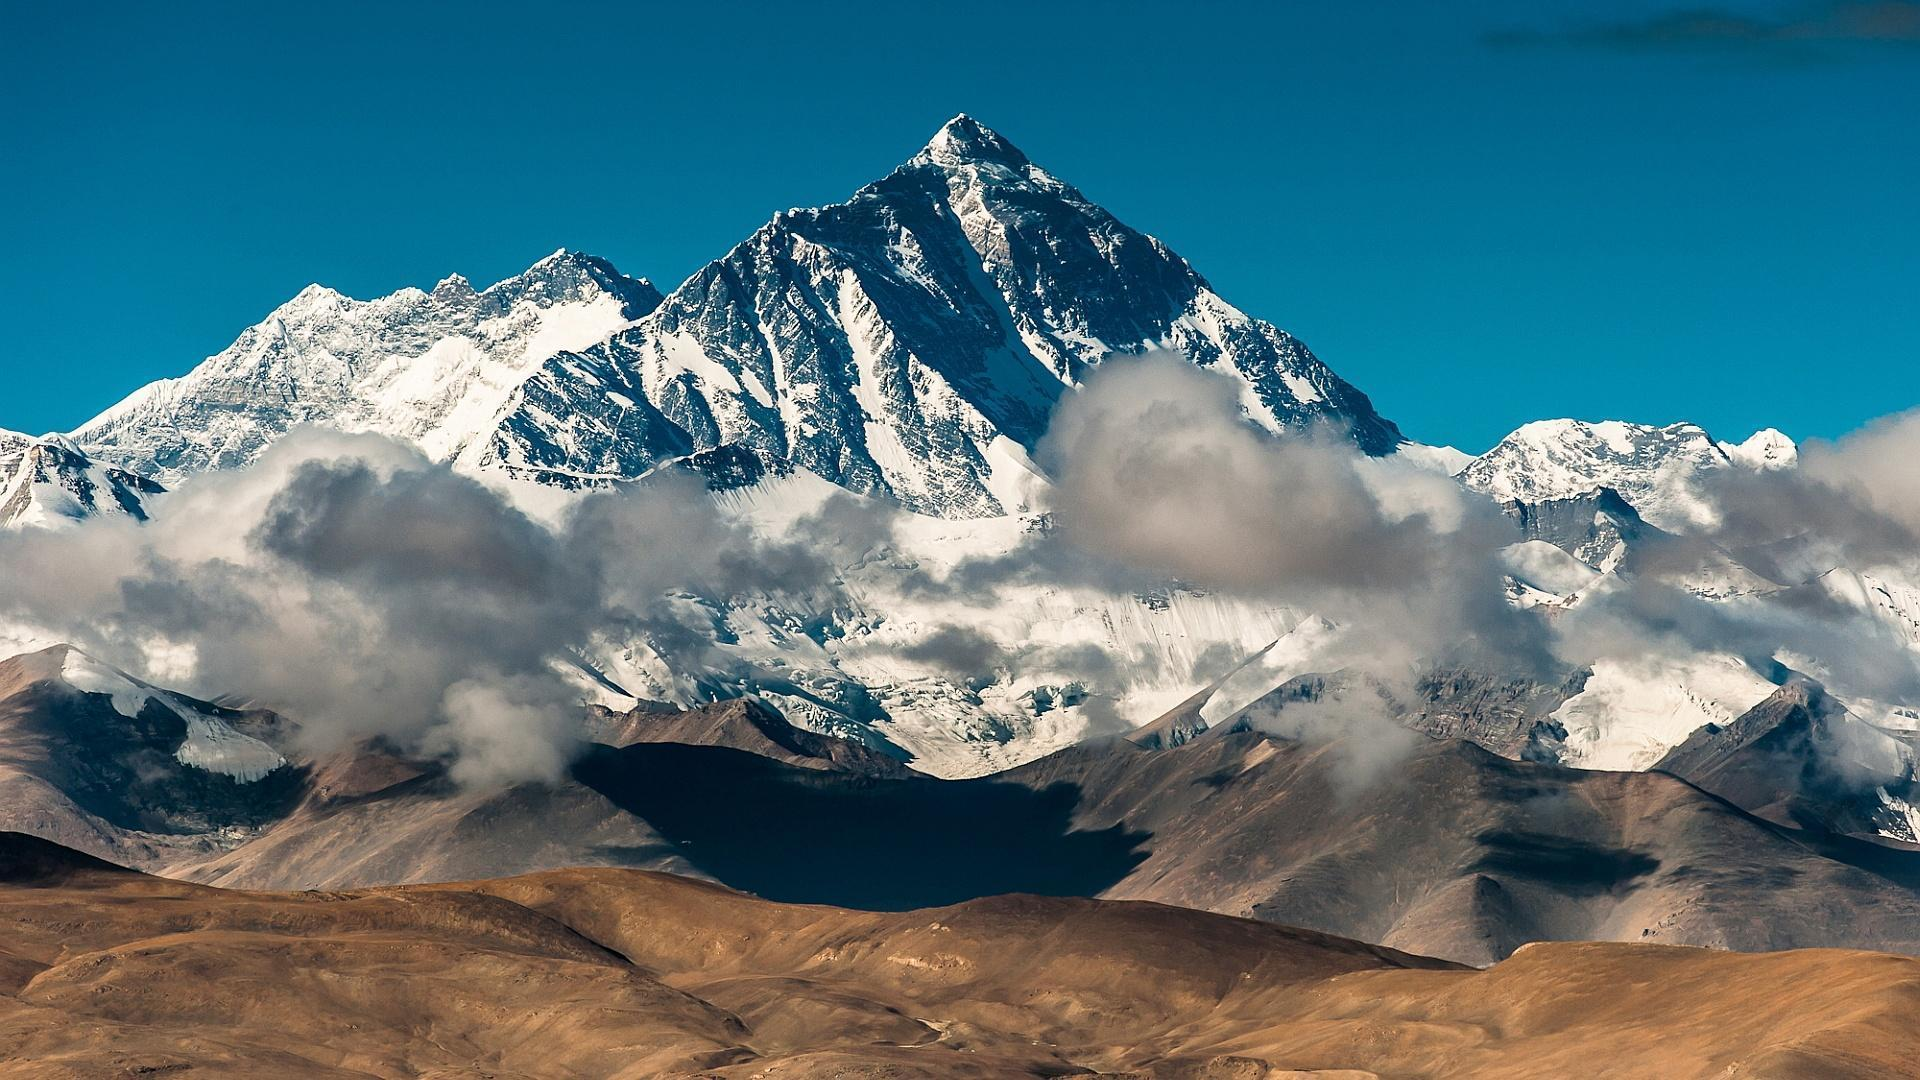 HD The mighty mount everest Wallpaper Free